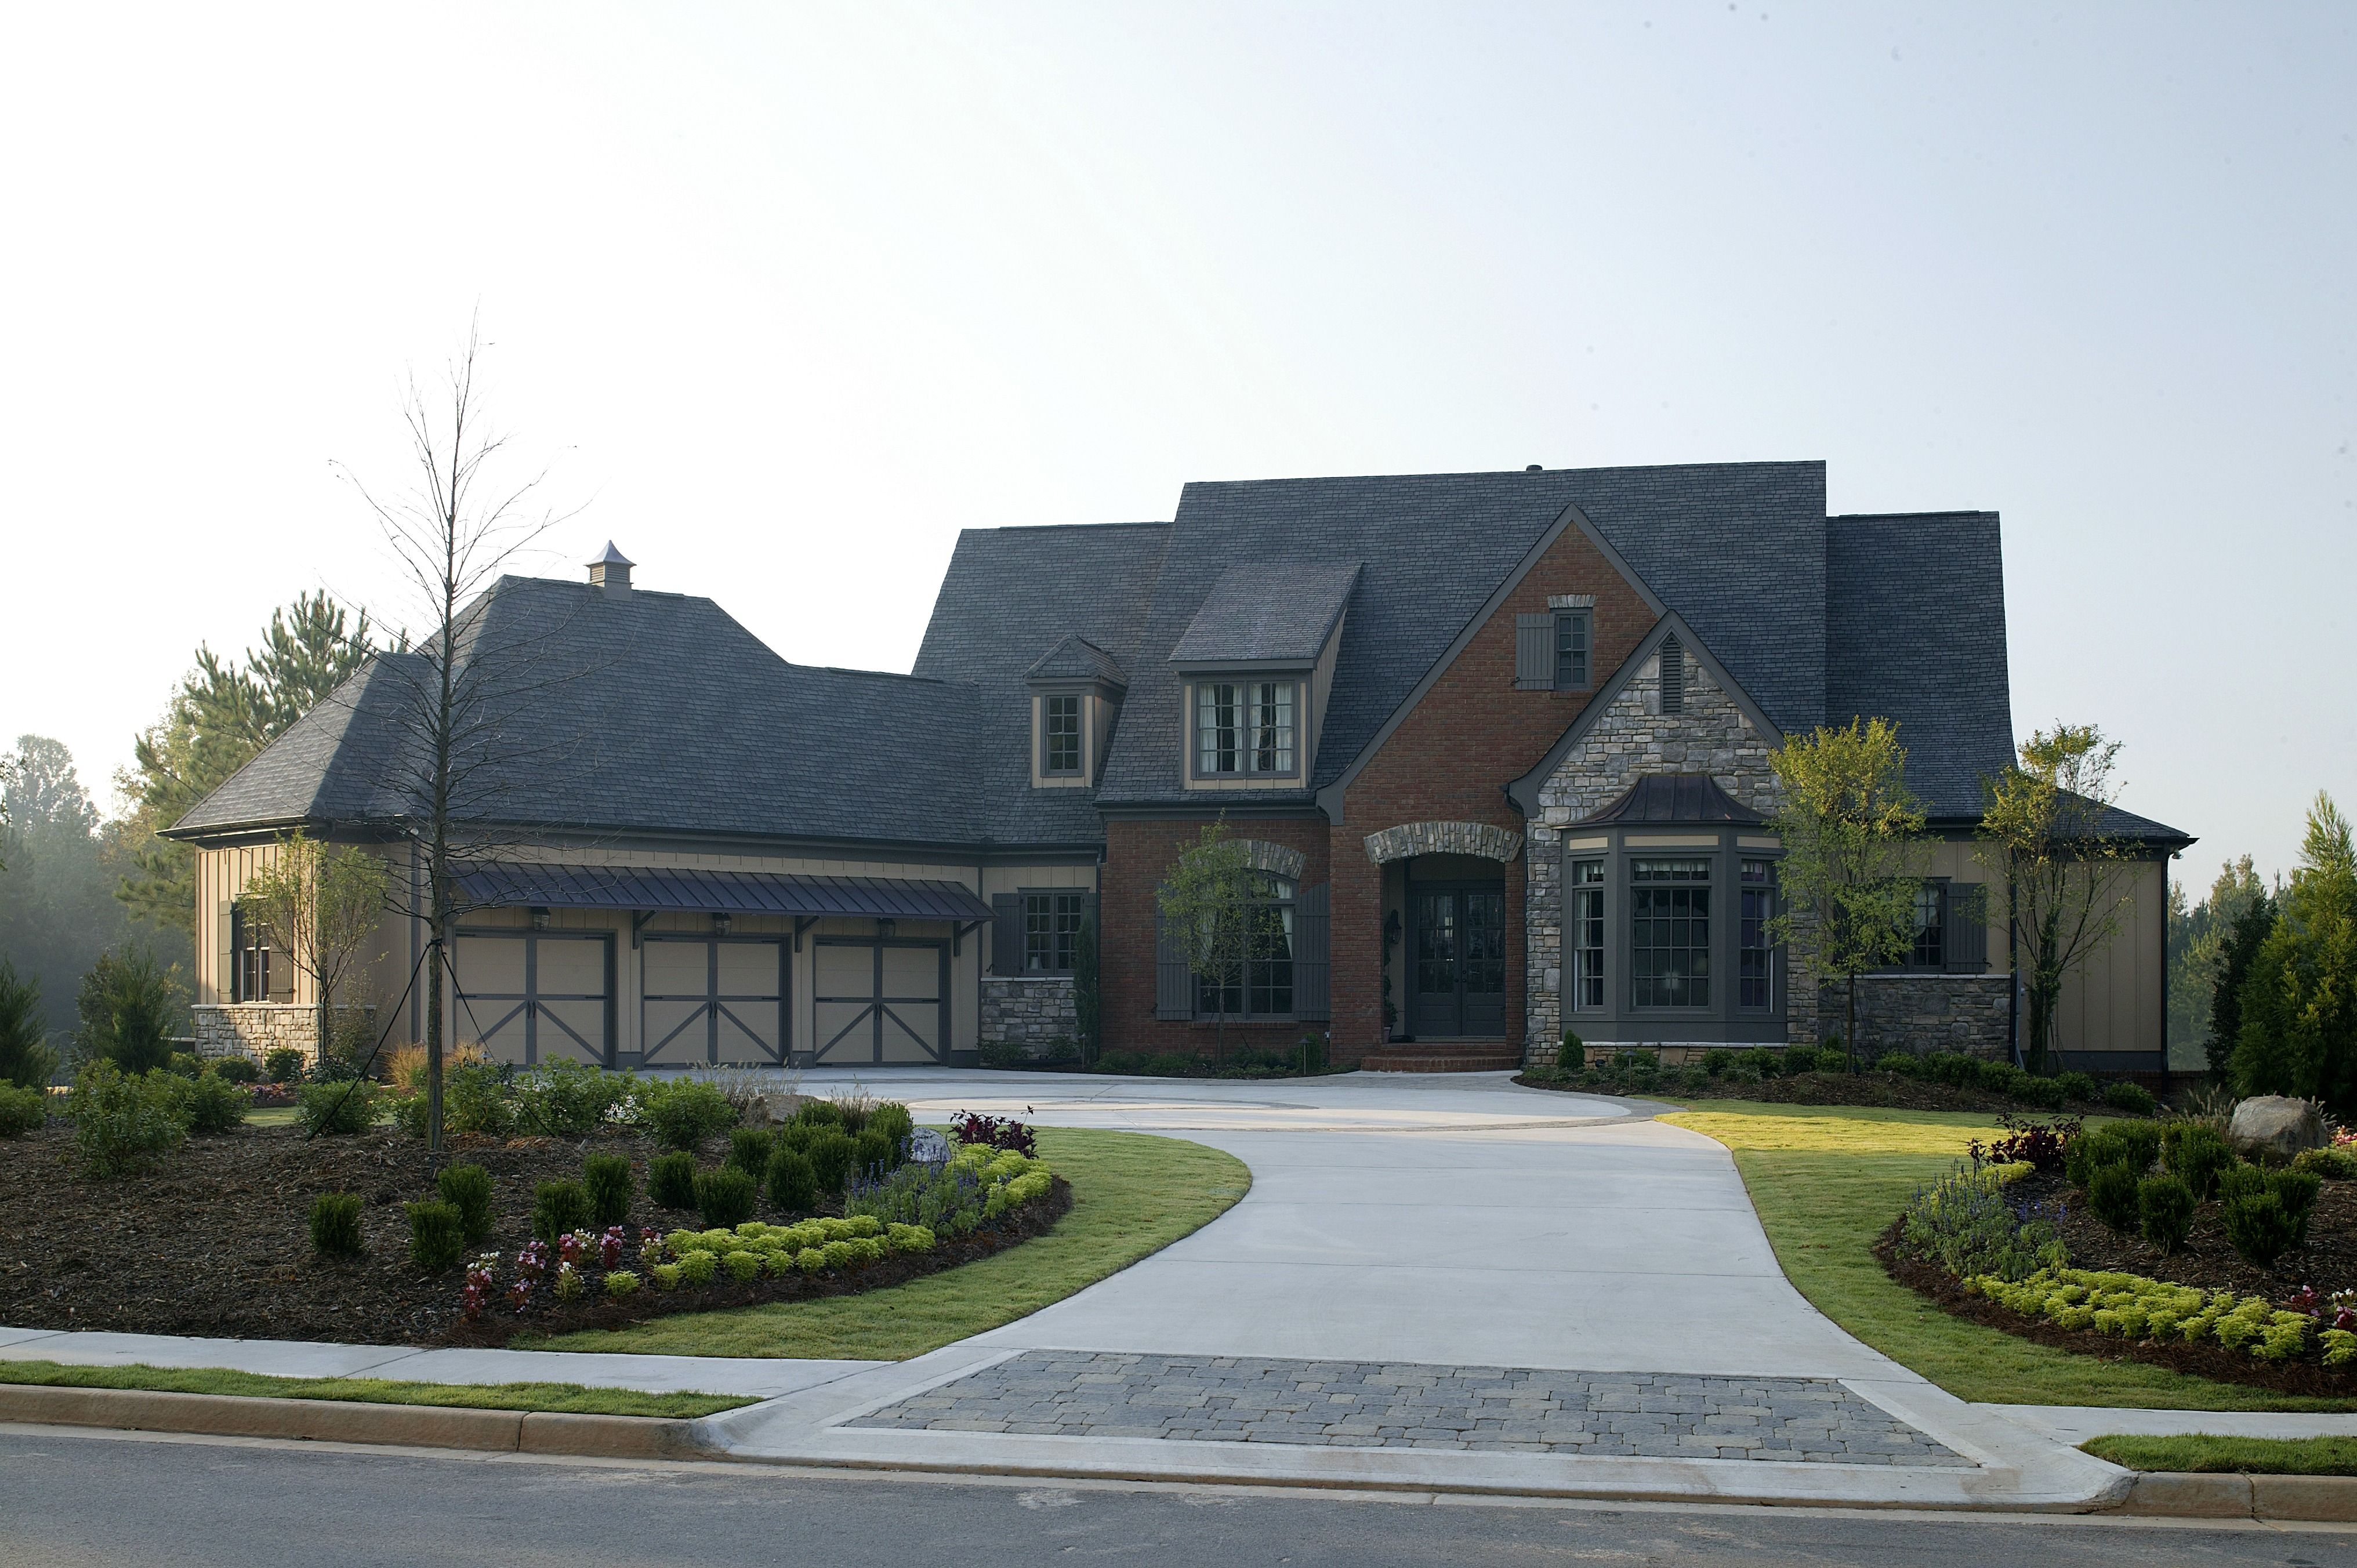 Exterior Painting Cost Cost To Paint House Exterior Front View Of House House Paint Exterior House Exterior